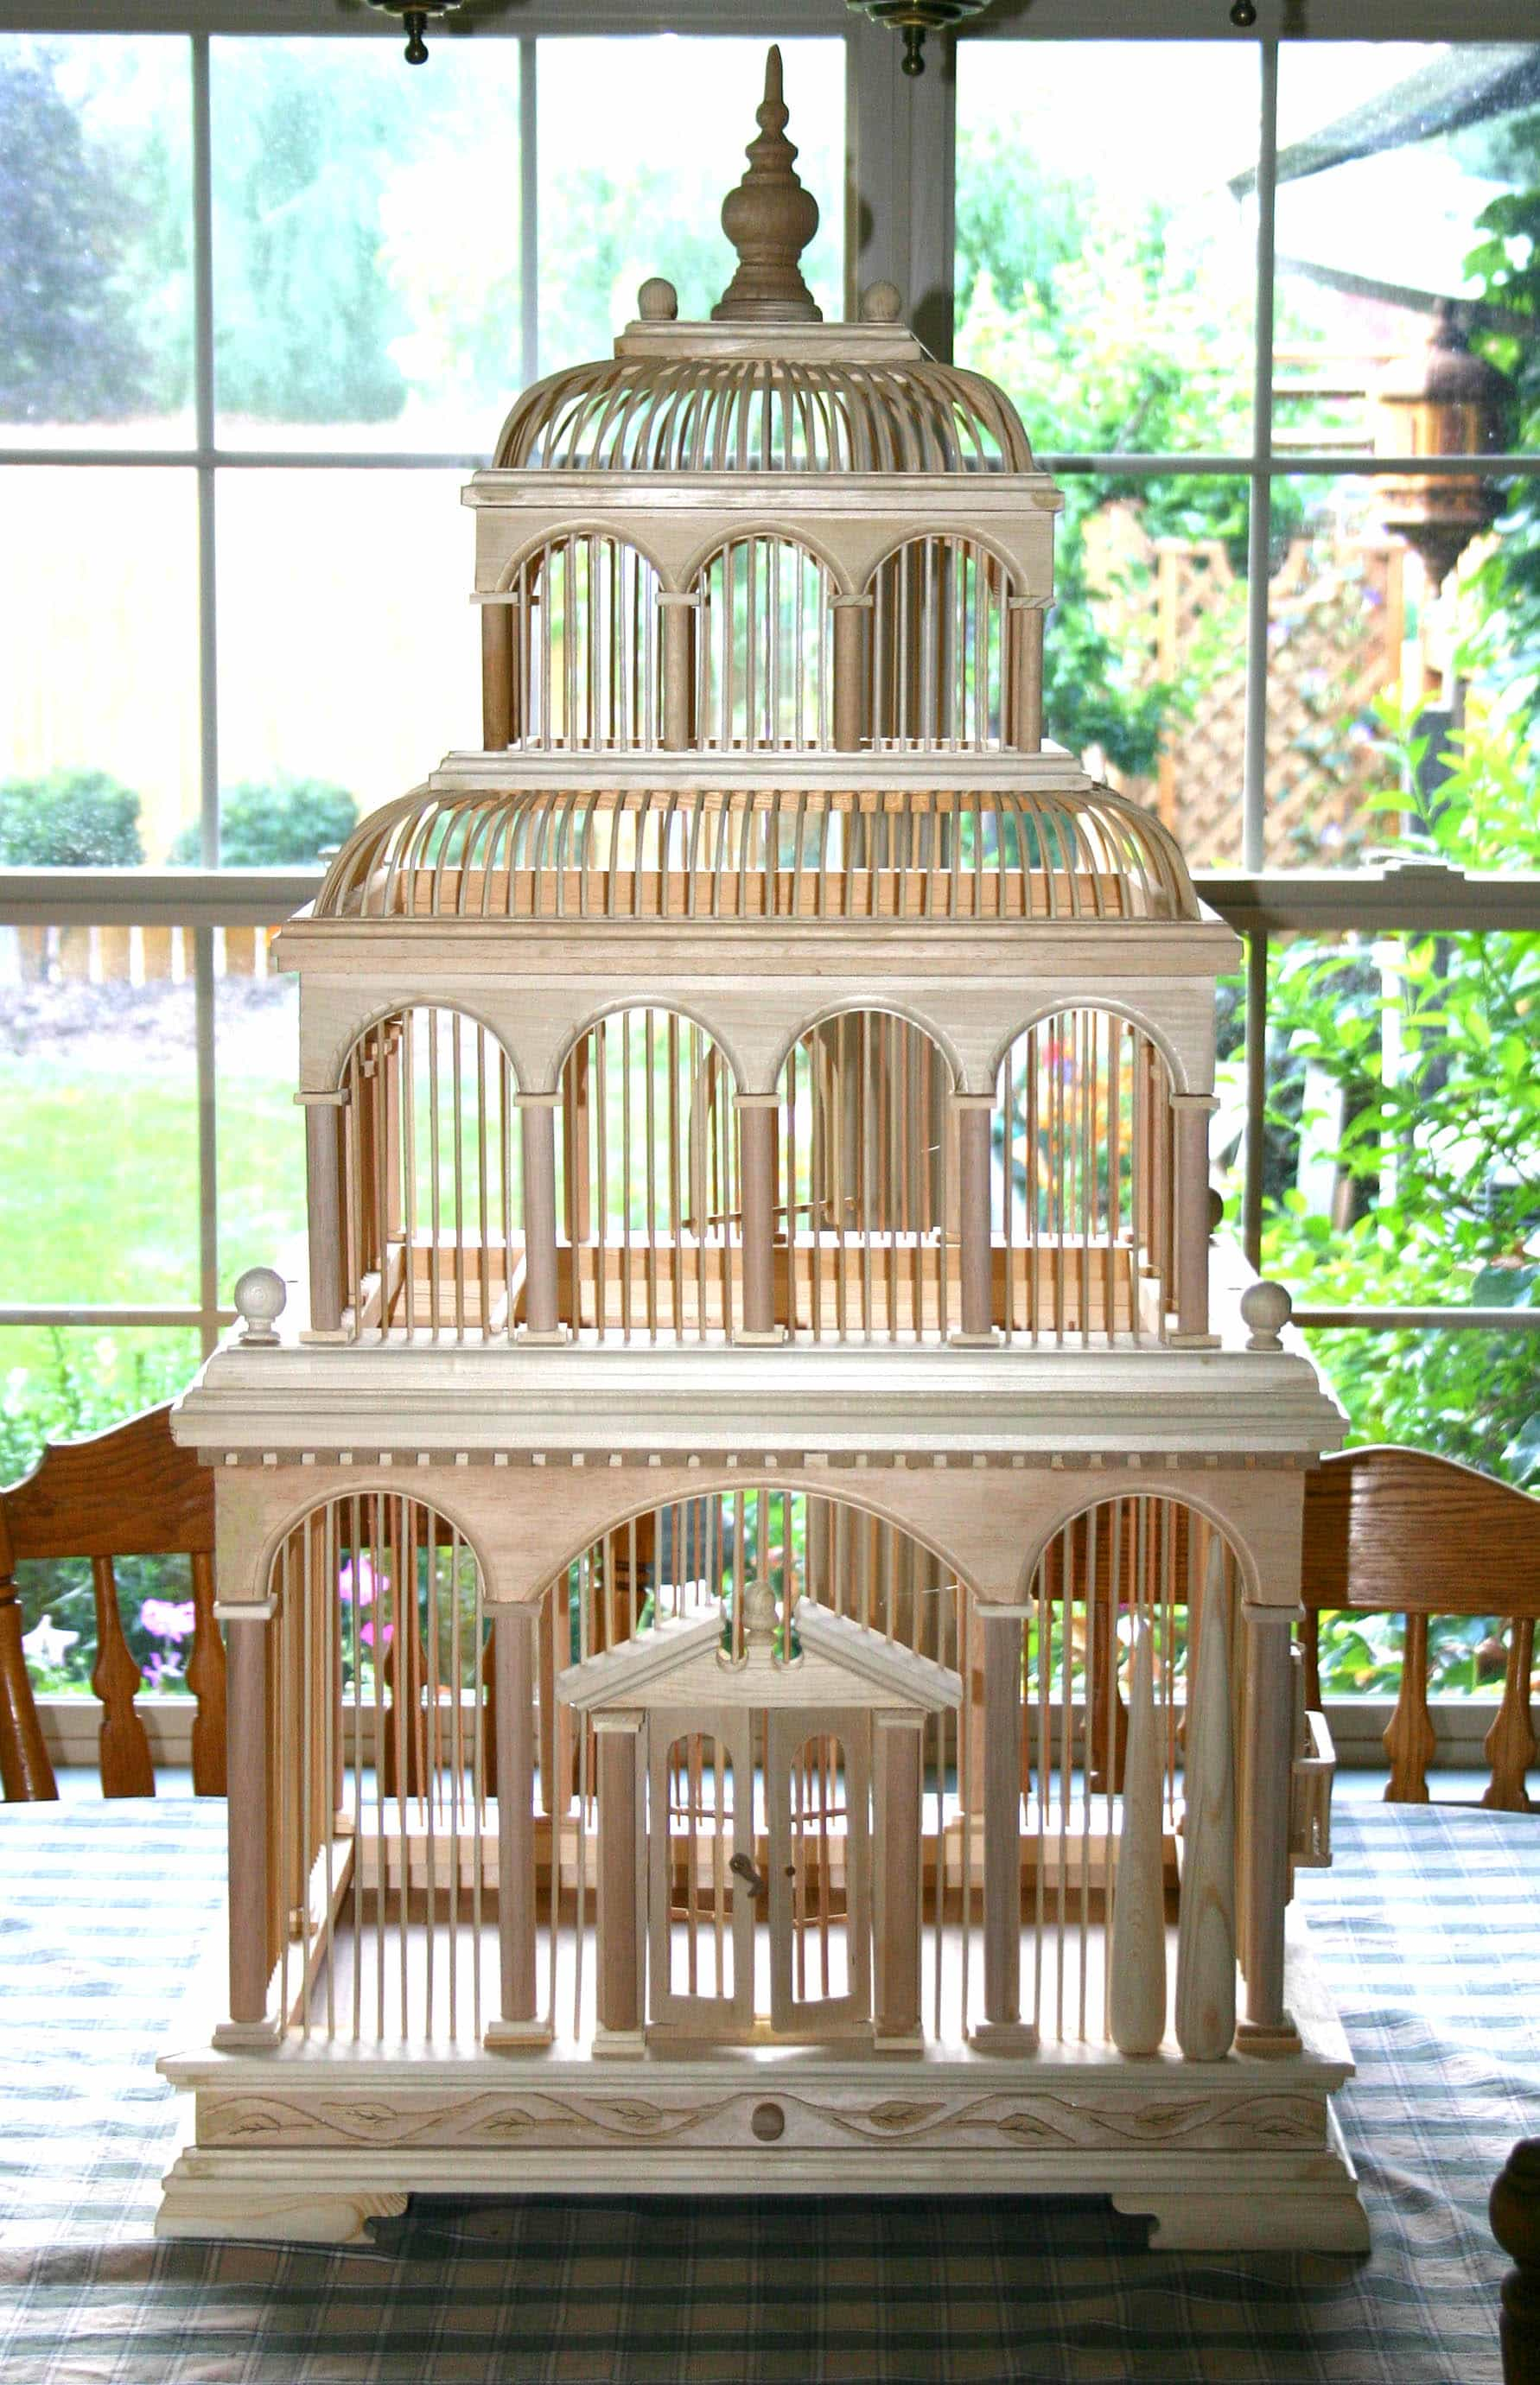 Venice Bird Cage Woodworking Plan - Forest Street Designs